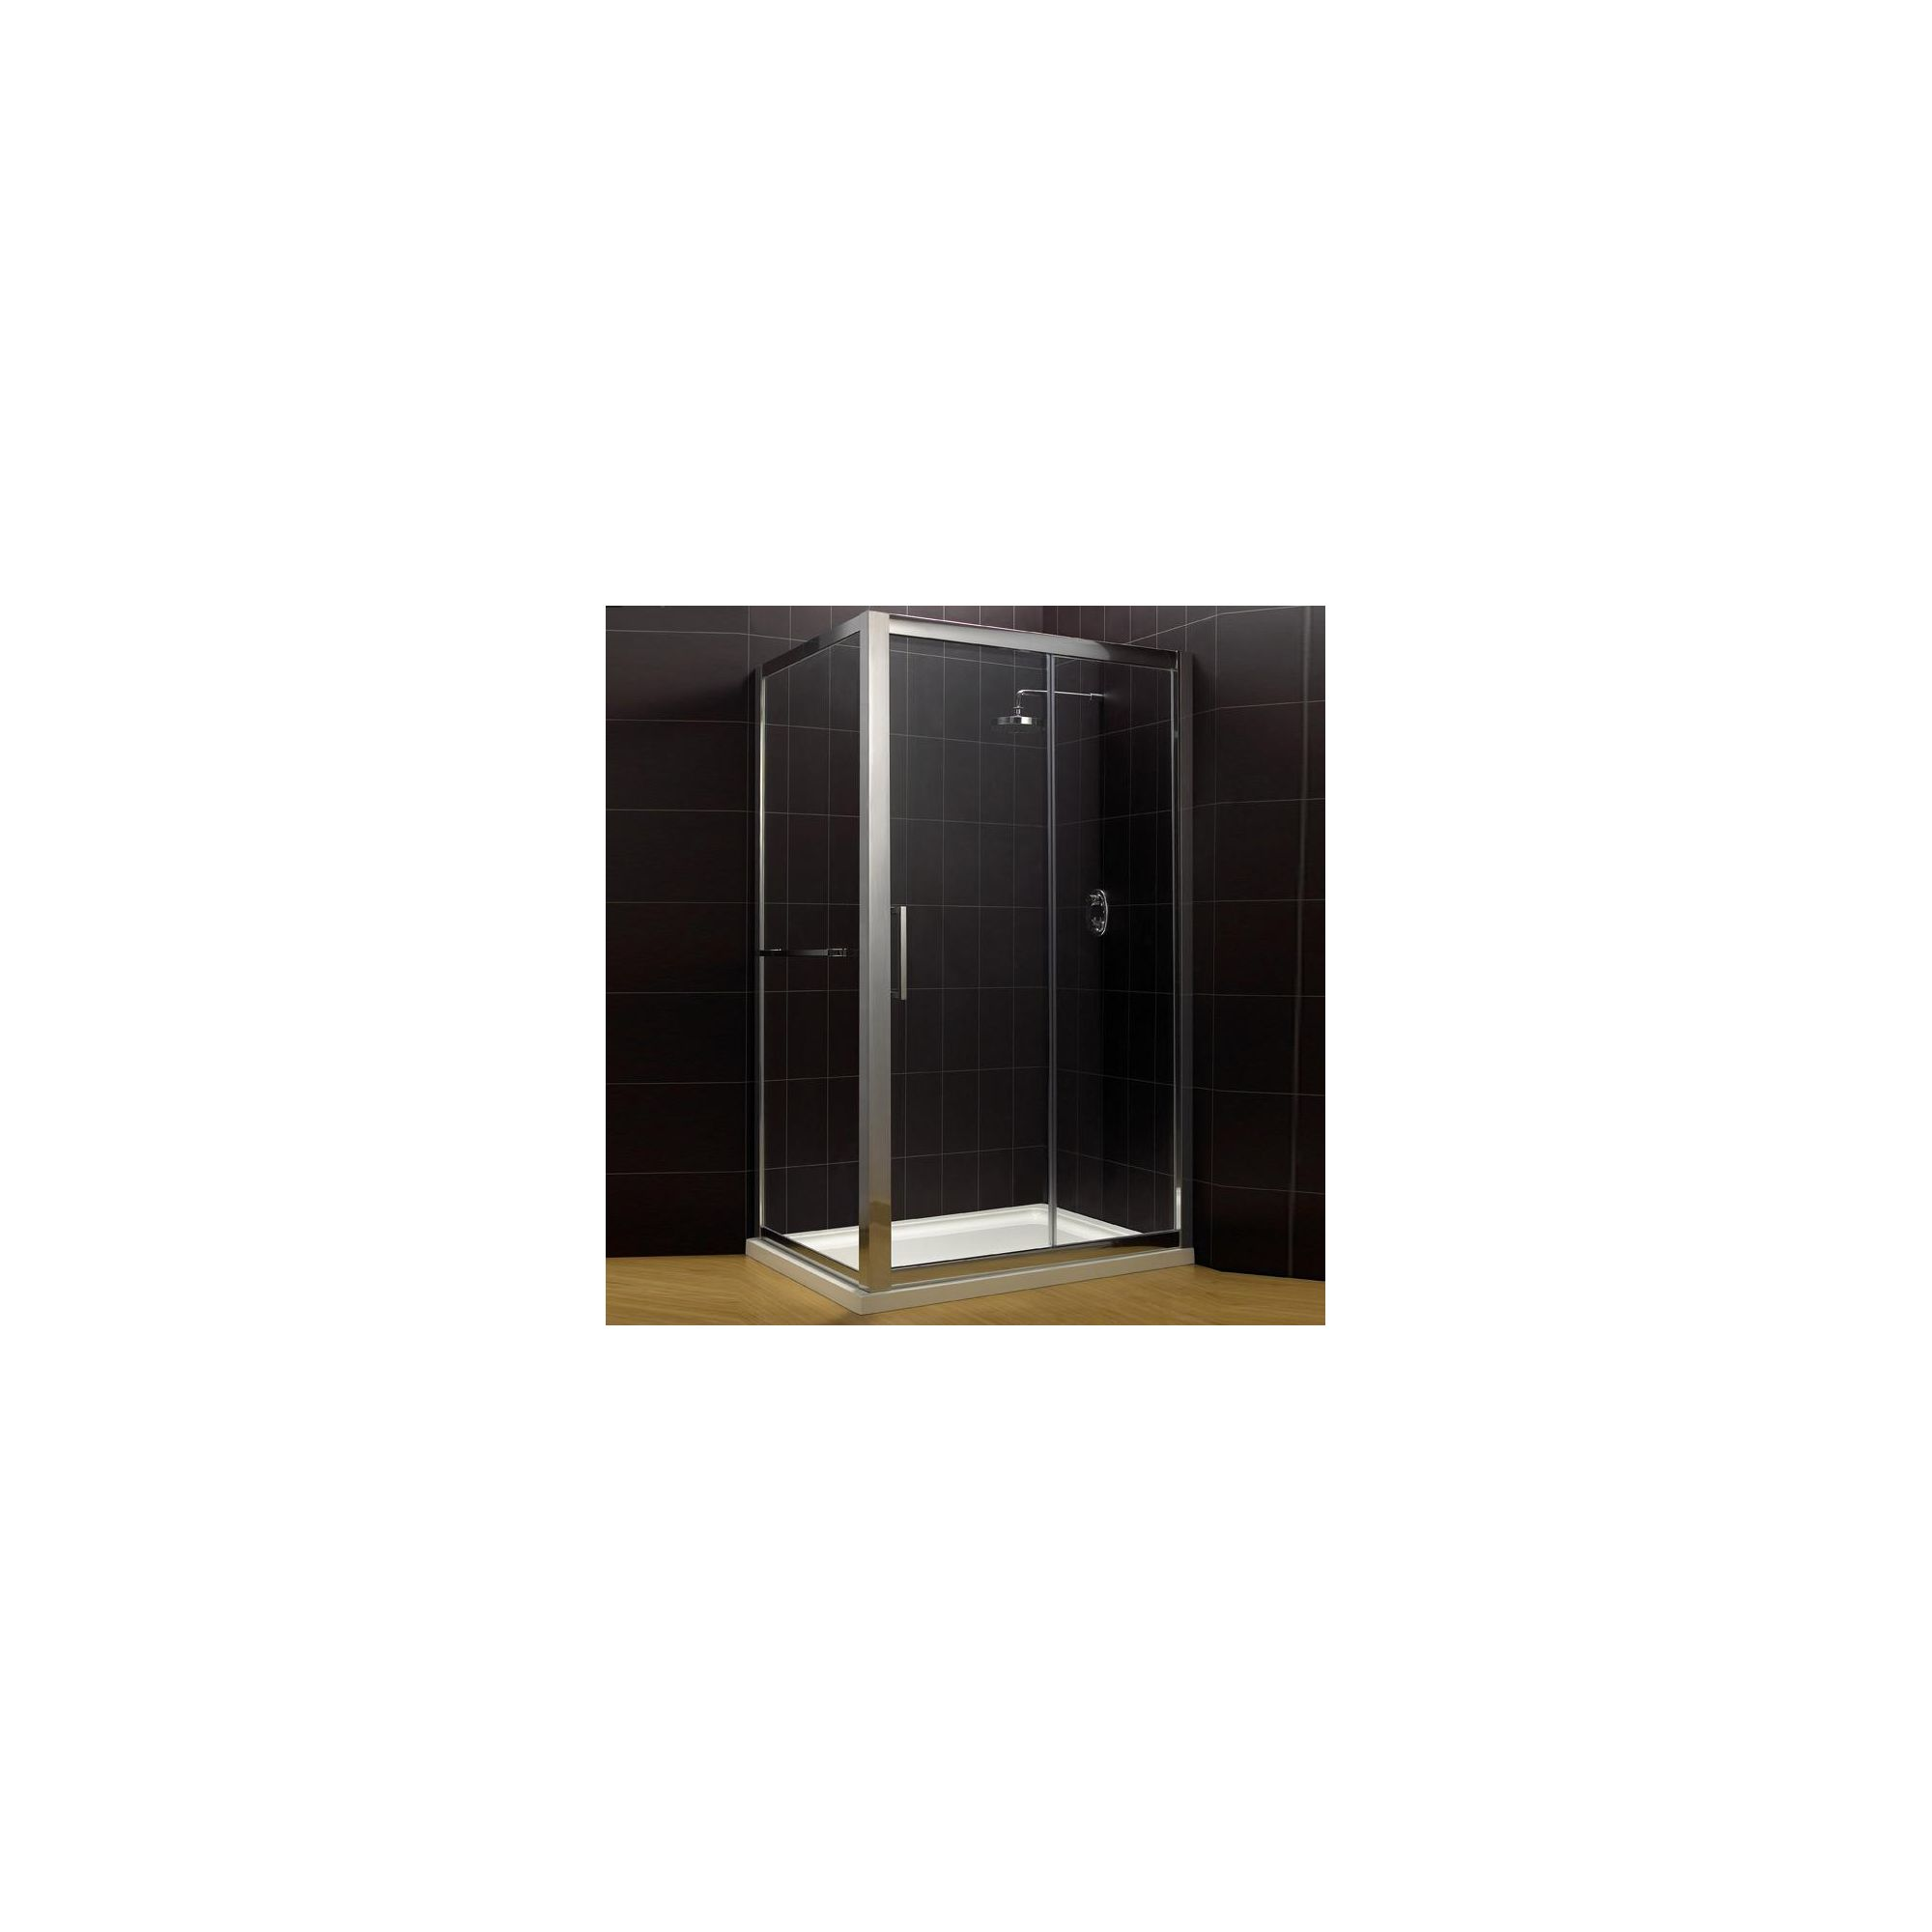 Duchy Supreme Silver Sliding Door Shower Enclosure, 1000mm x 700mm, Standard Tray, 8mm Glass at Tesco Direct